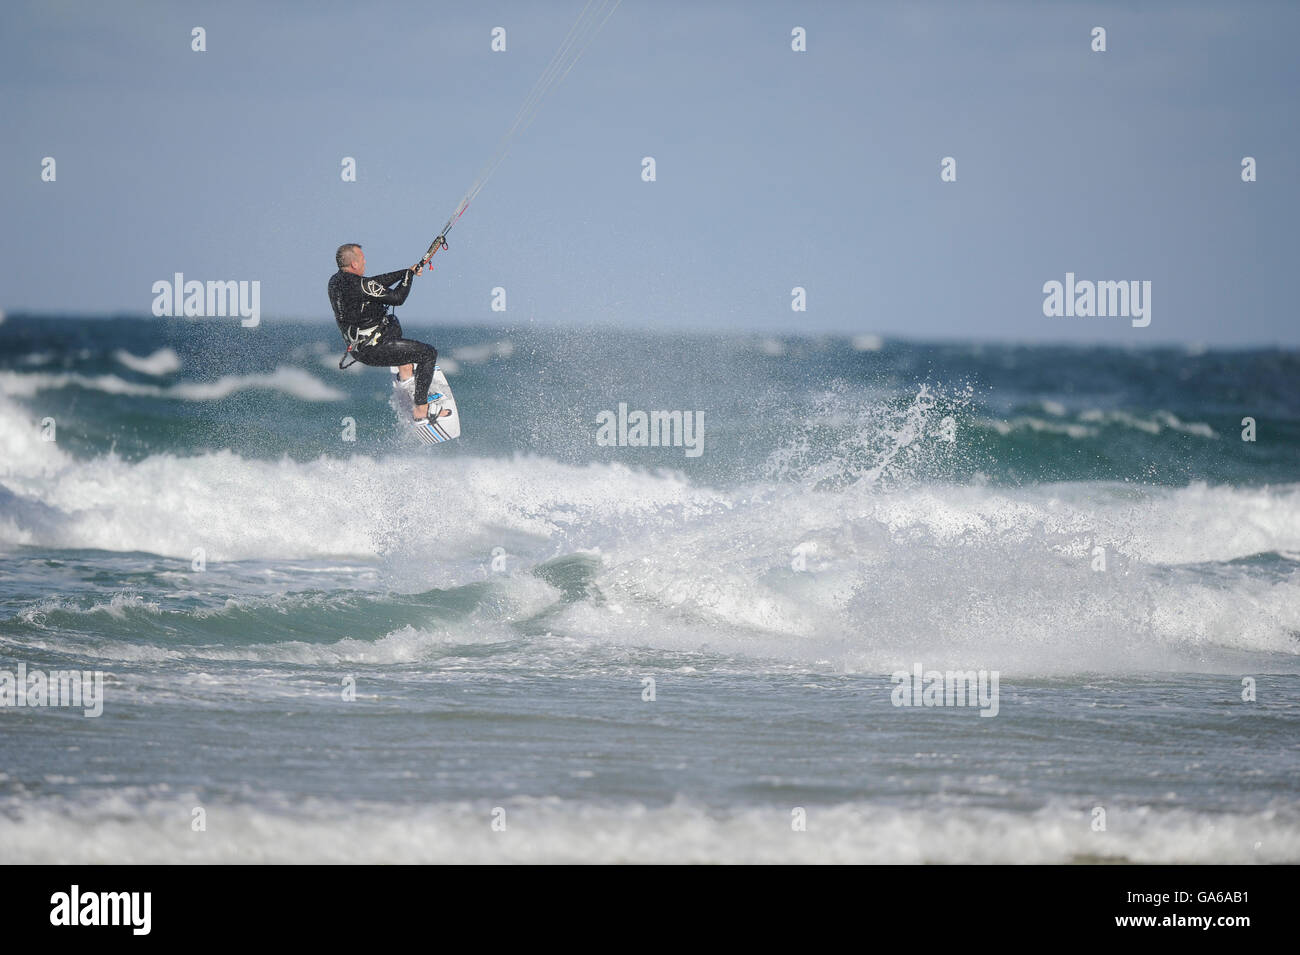 Kitesurfer launching off a wave with spray splashing off the baord - Stock Image